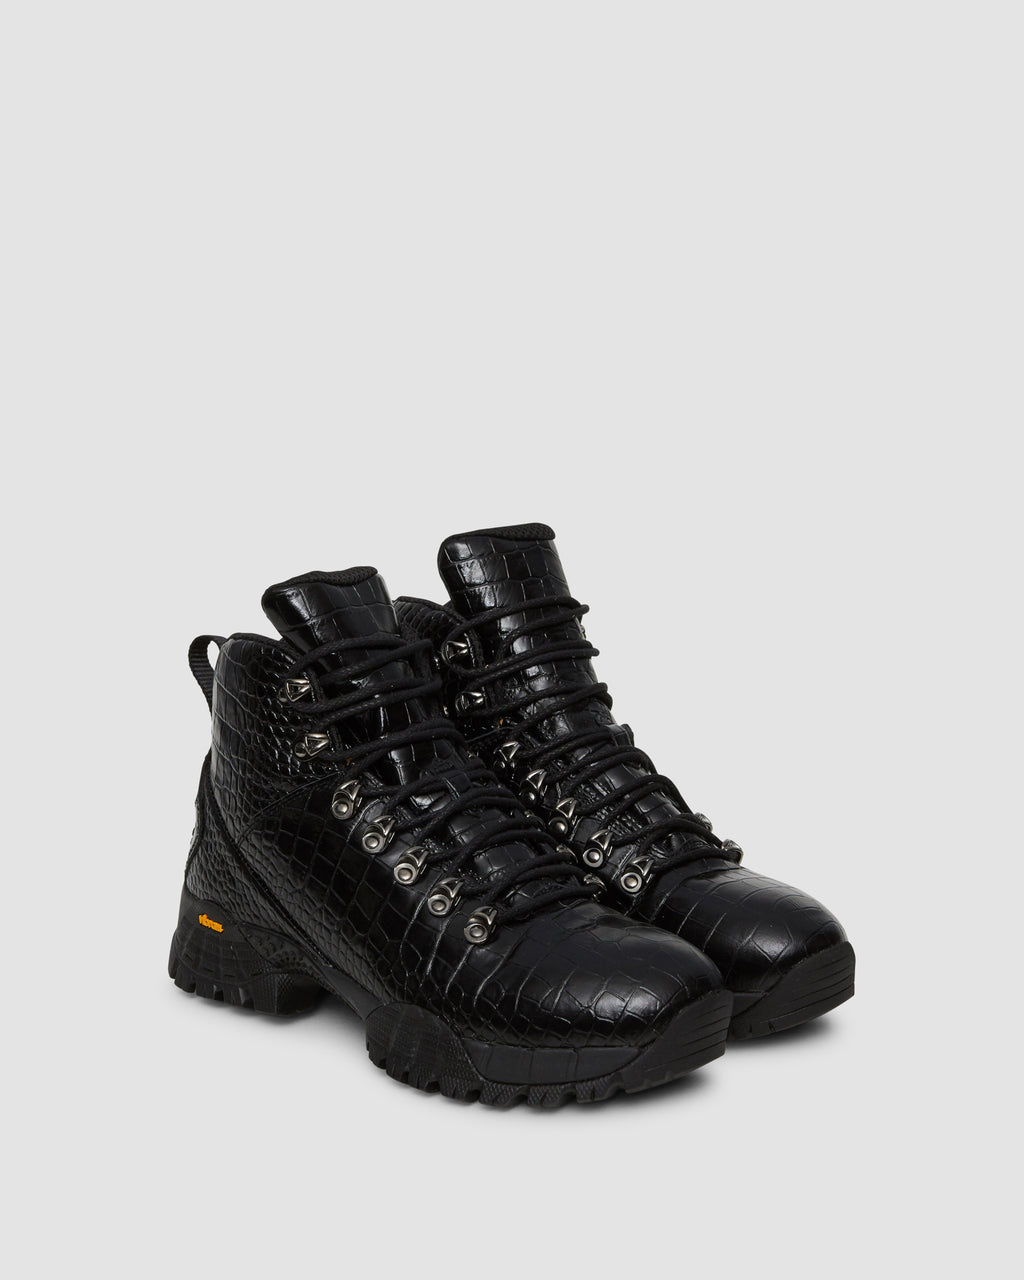 BLACK CROC HIKING BOOT